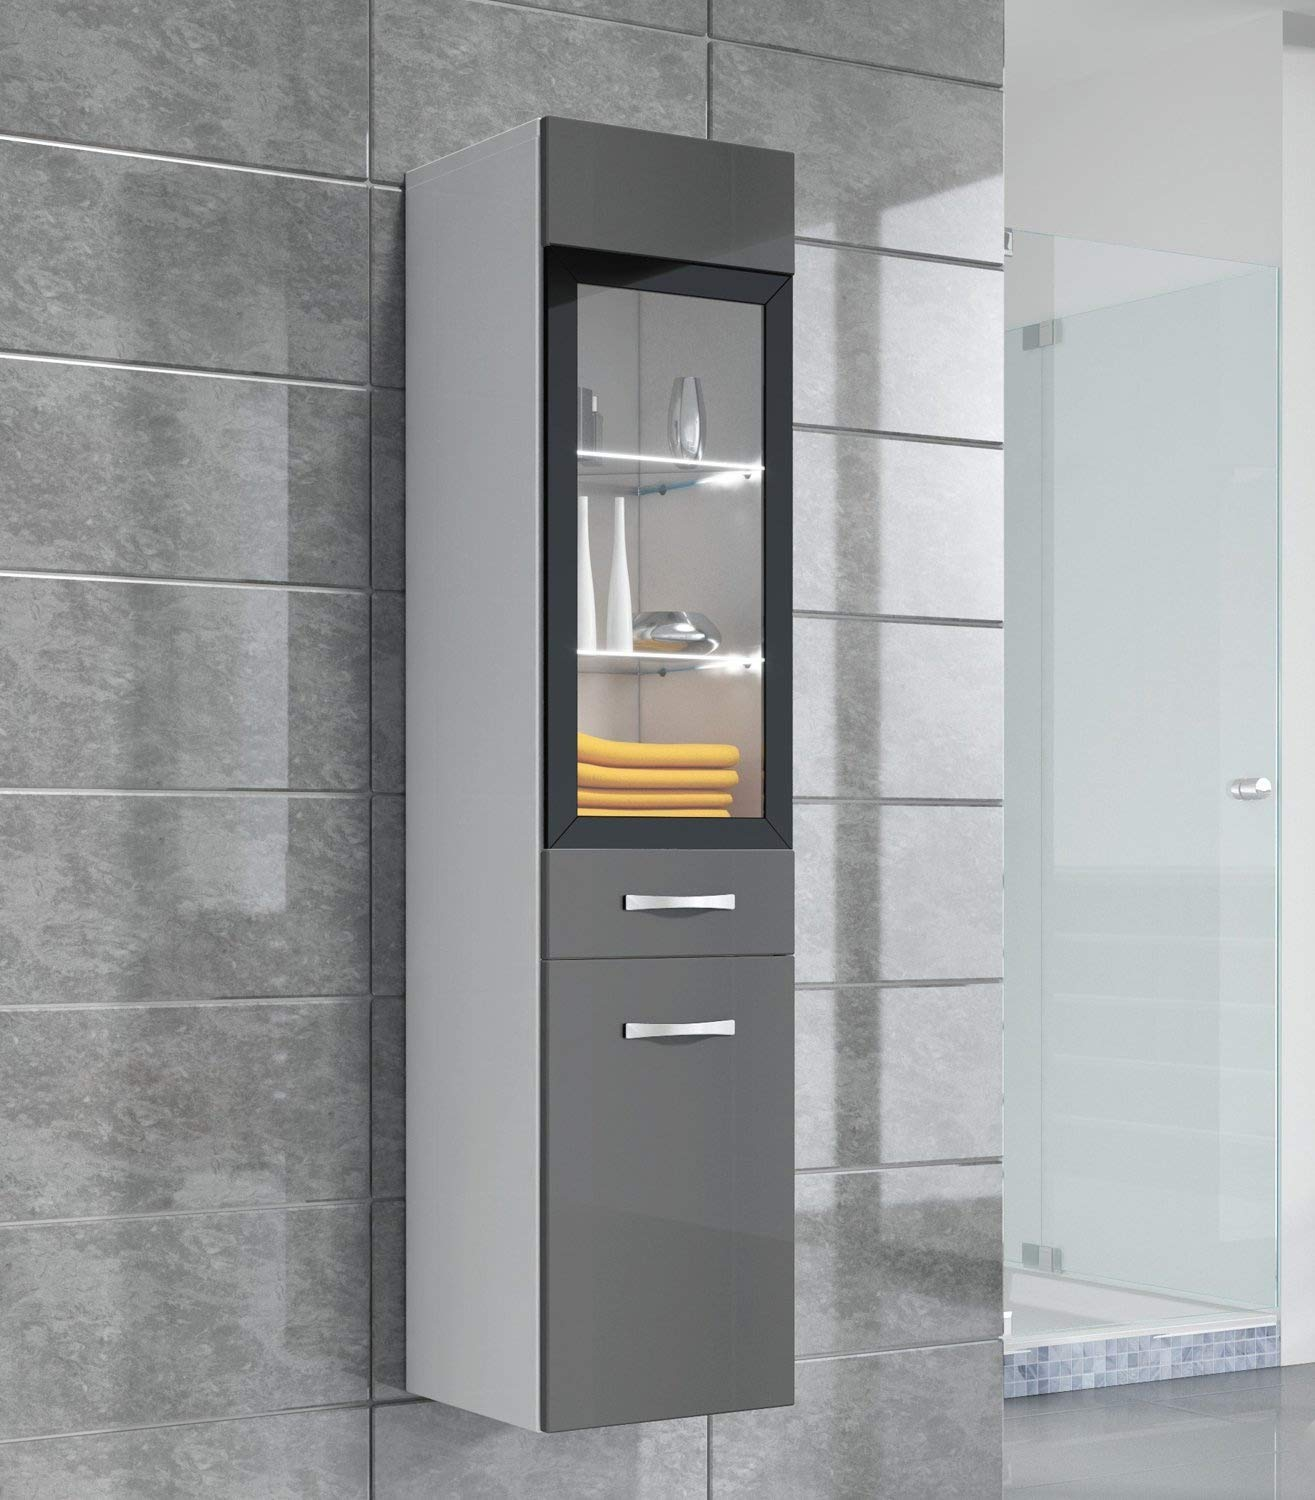 Badplaats Storage cabinet Rio 131cm height grey high gloss - Storage cabinet tall cupboard bathroom furniture